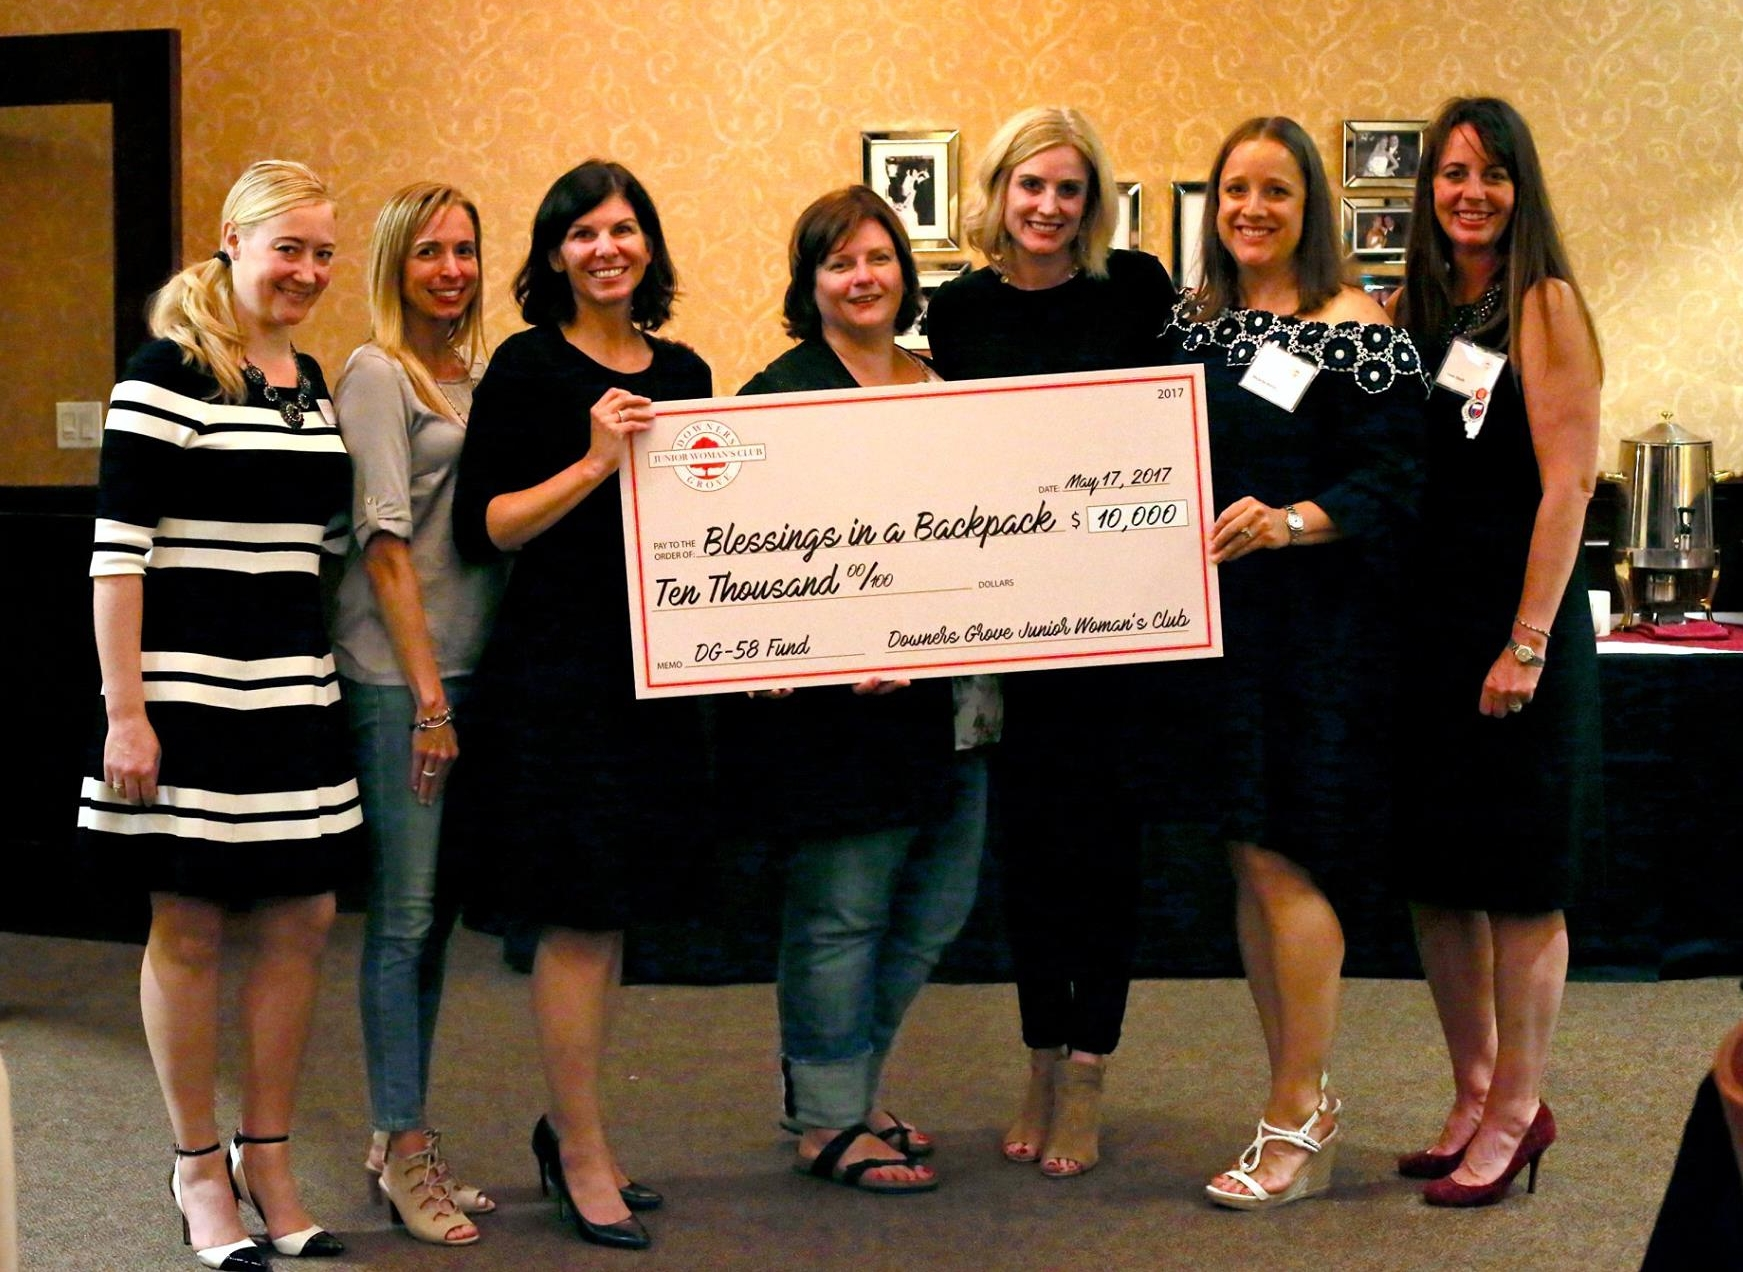 $10,000 Special Grant - The Downers Grove Junior Woman's Club, which serves the Downers Grove and surrounding DuPage County community, will be awarding a deserving local not-for-profit organization a one-time $10,000 grant to support current and future initiatives.